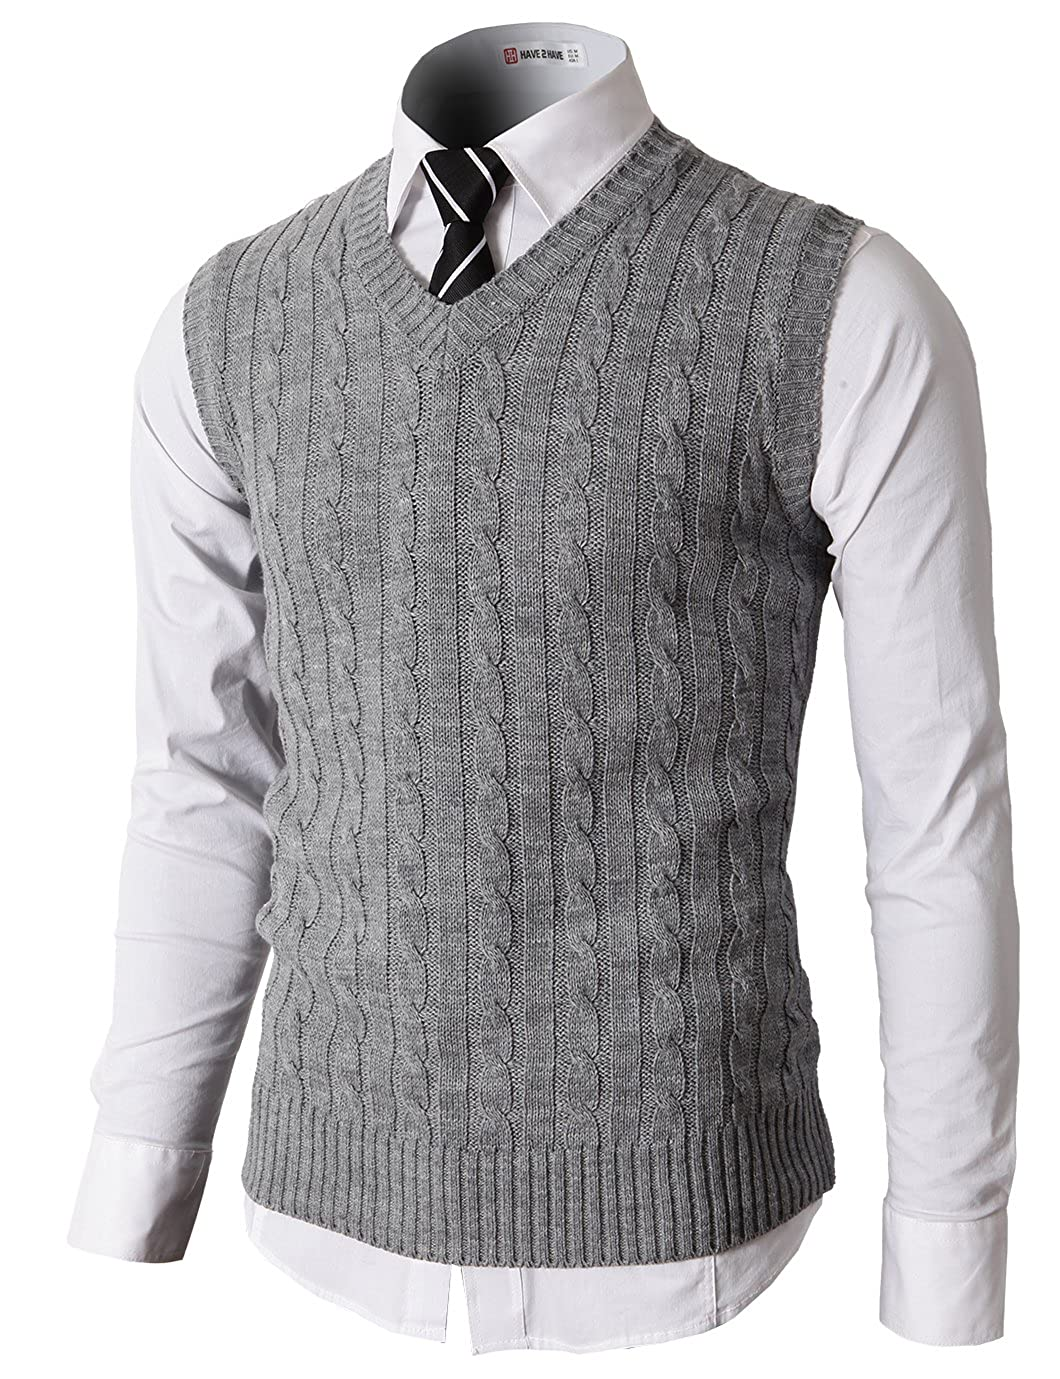 1940s Men's Shirts, Sweaters, Vests H2H Mens Casual Knitted Slim Fit V-neck Vest With Twisted Patterned $26.80 AT vintagedancer.com